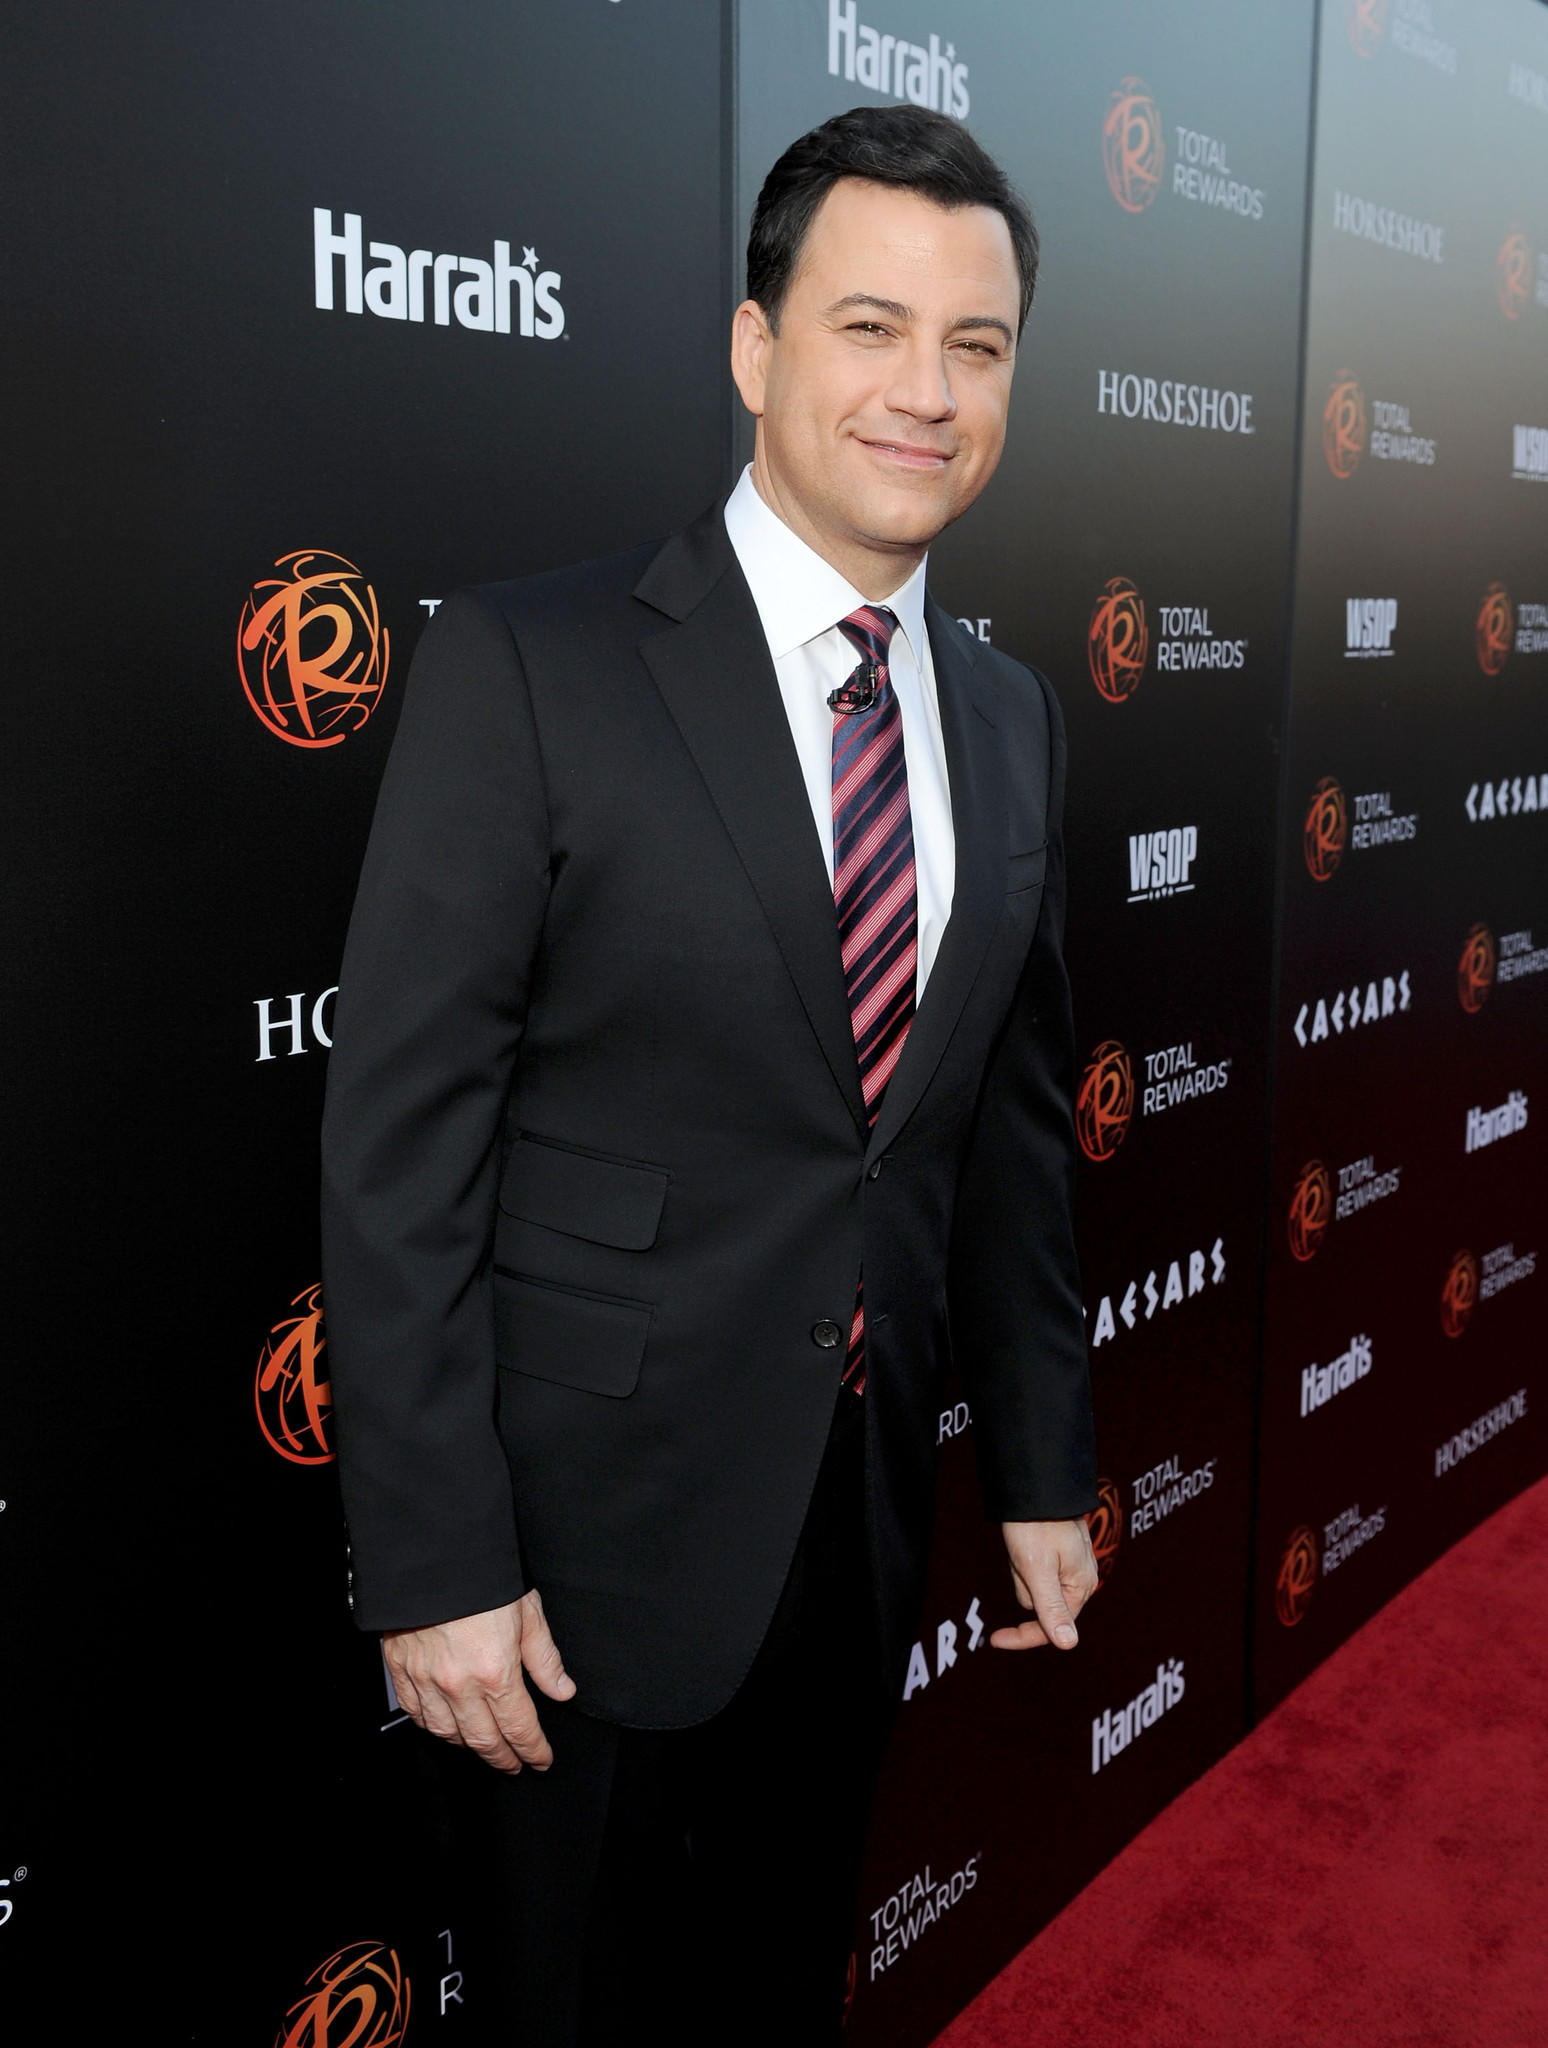 Jimmy Kimmel attends Escape to Total Rewards at Hollywood & Highland Center in Hollywood, California.